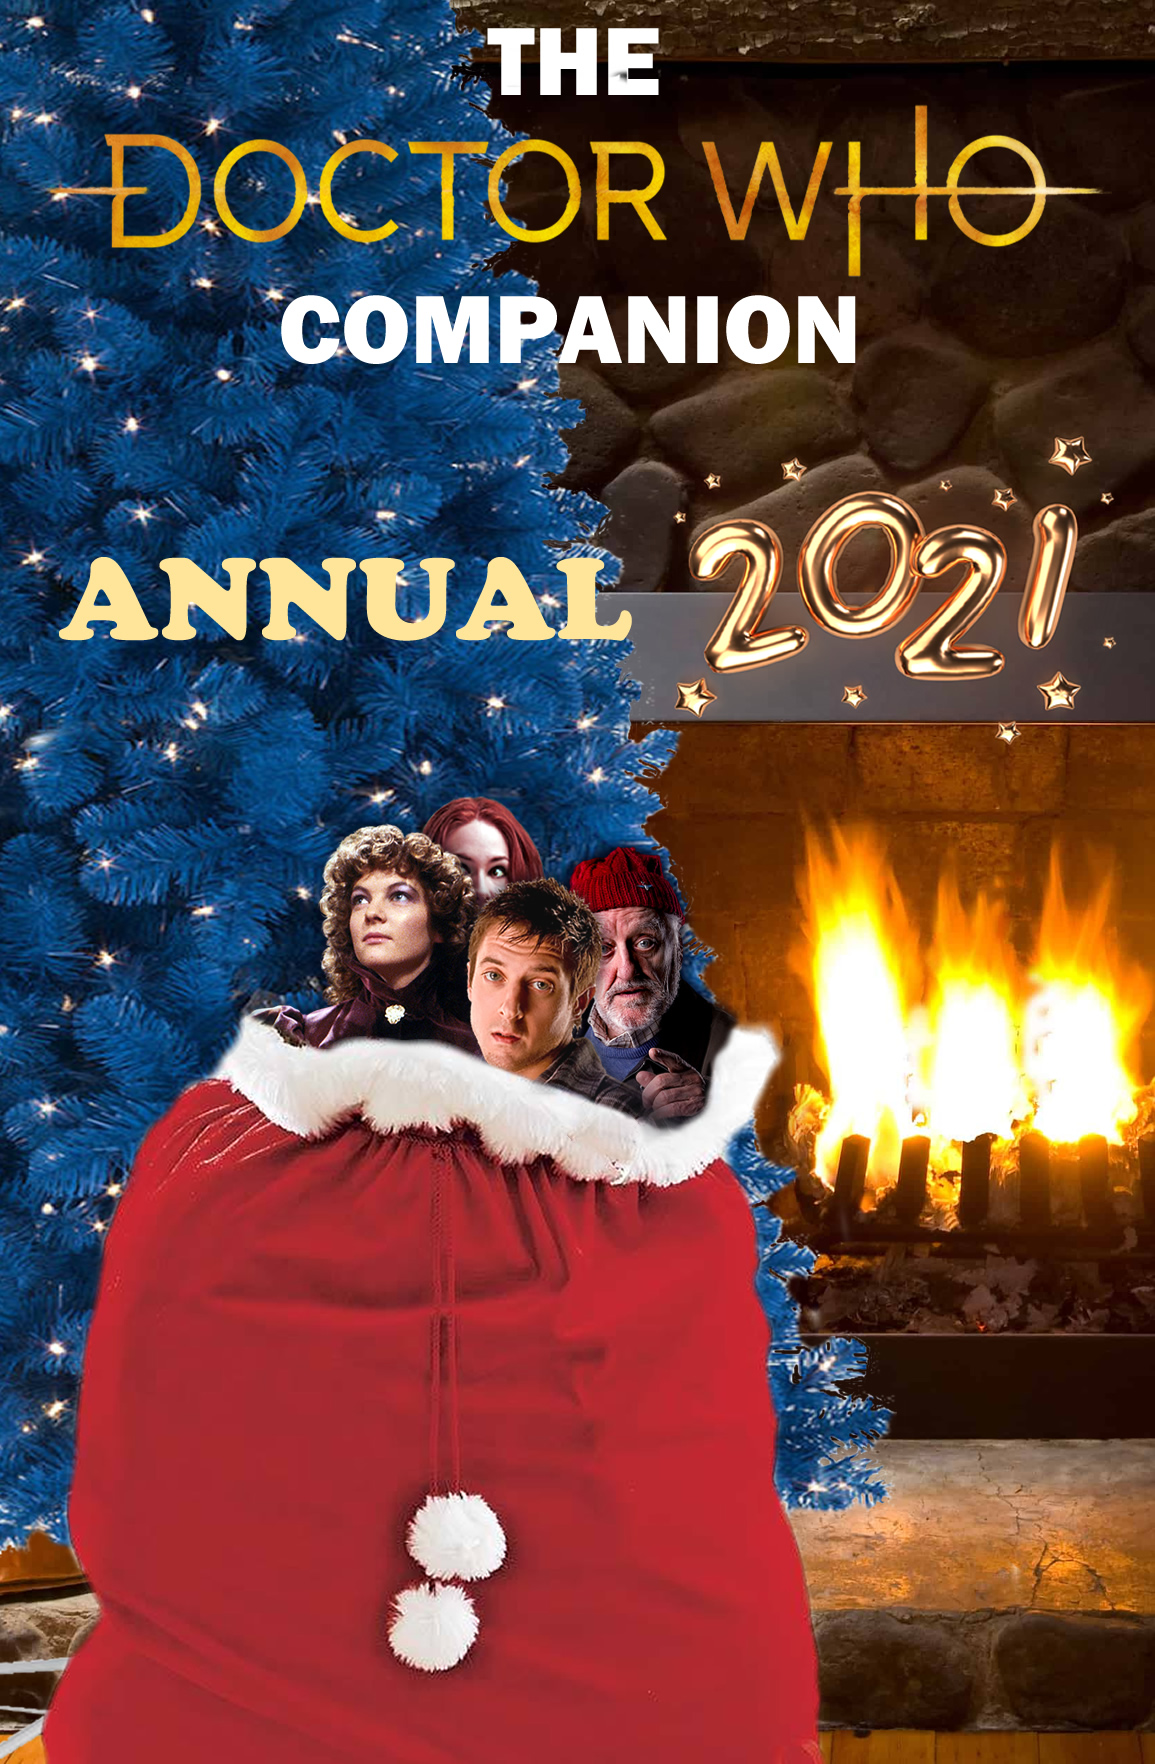 Dcotor Who Christmas Special 2021 Merry Christmas Celebrate With The Free Doctor Who Companion Annual 2021 The Doctor Who Companion